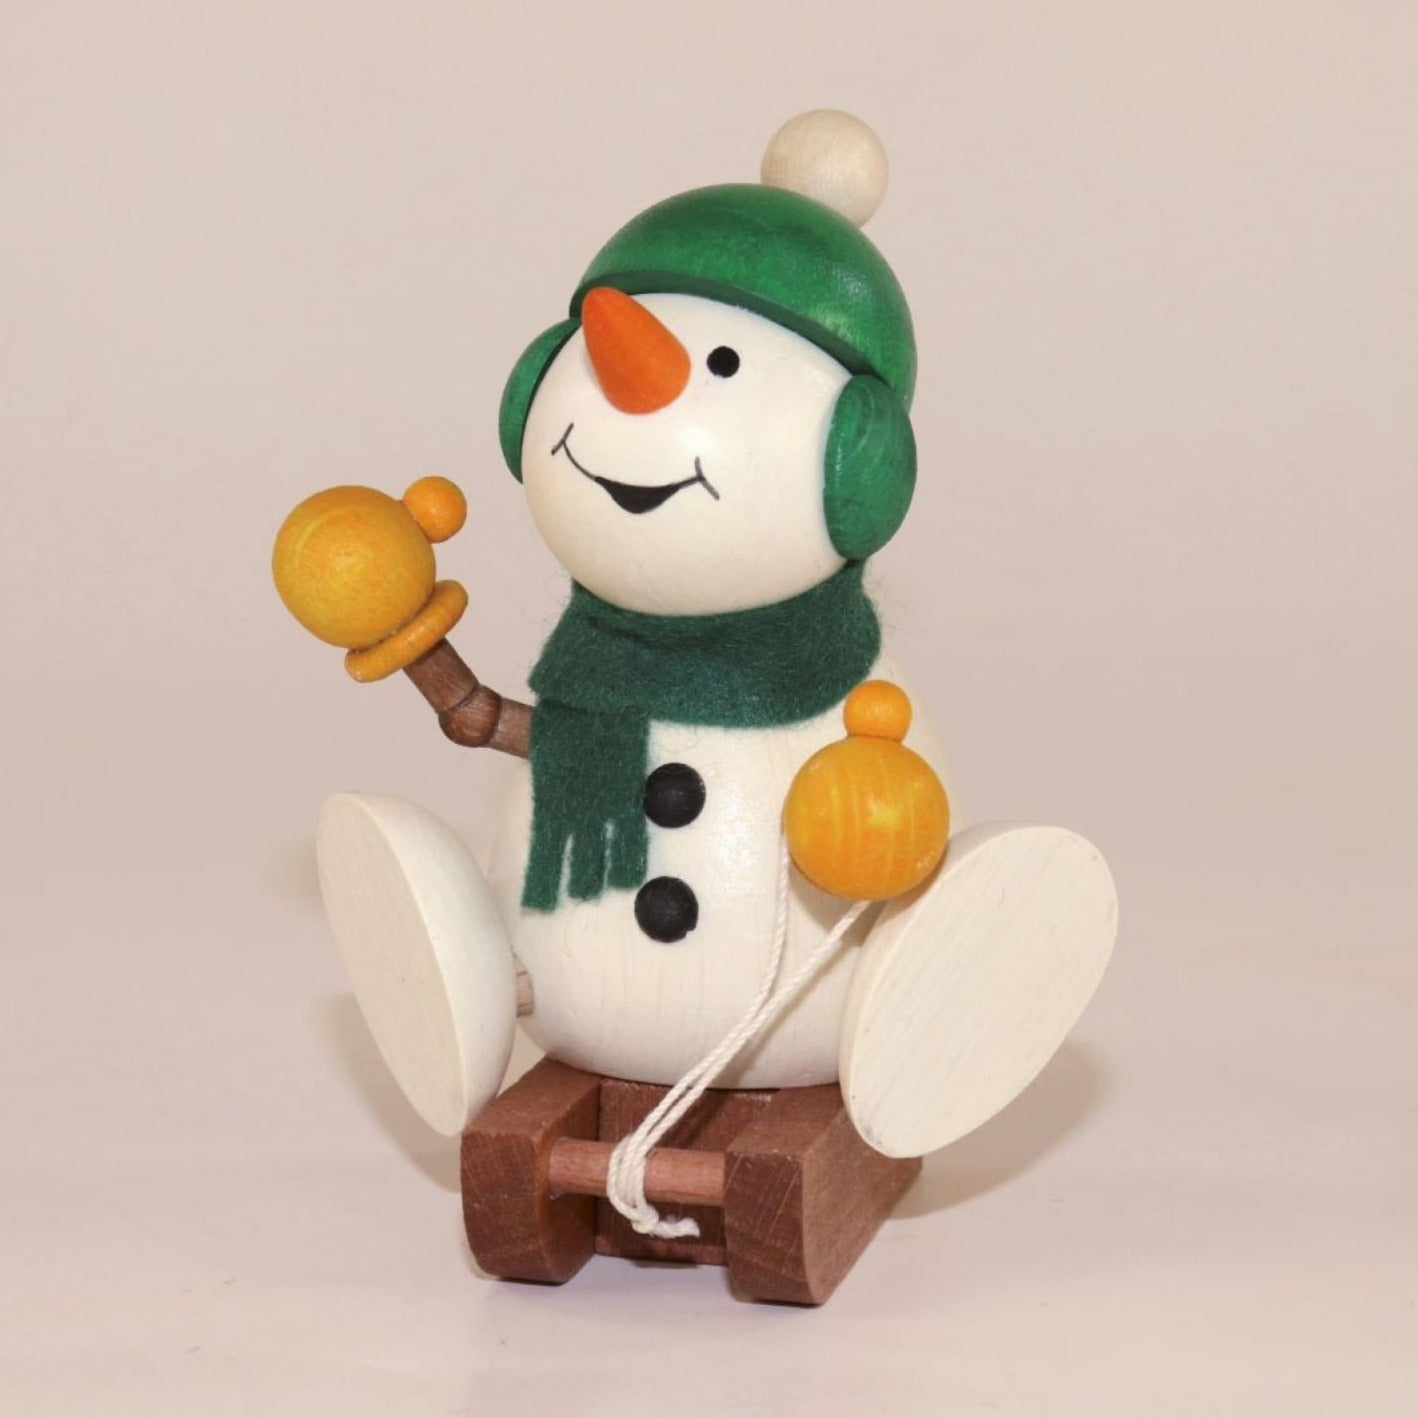 Weihnachtsmann Collectibles - Large Snowman with Sled